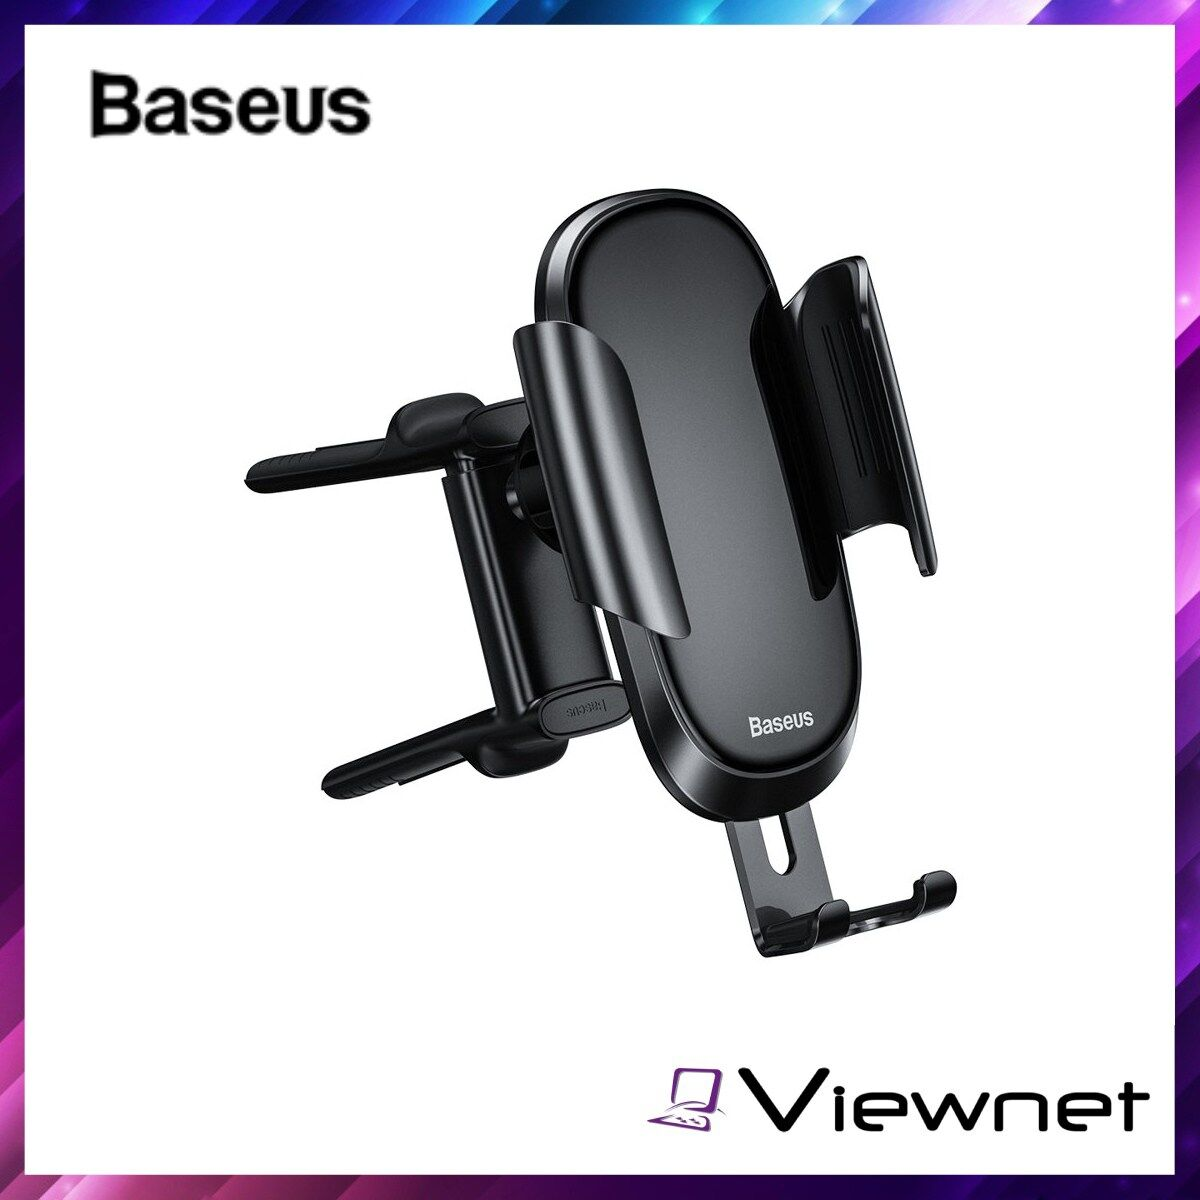 Baseus Future Series Glass Surface Gravity Car Air Vent Mount Holder (SUYL-BWL01), Applicable to Round Air Outlet, 360 Degree Rotation, Aviation Aluminum alloy, Compatible 4.8-6.5 Inch